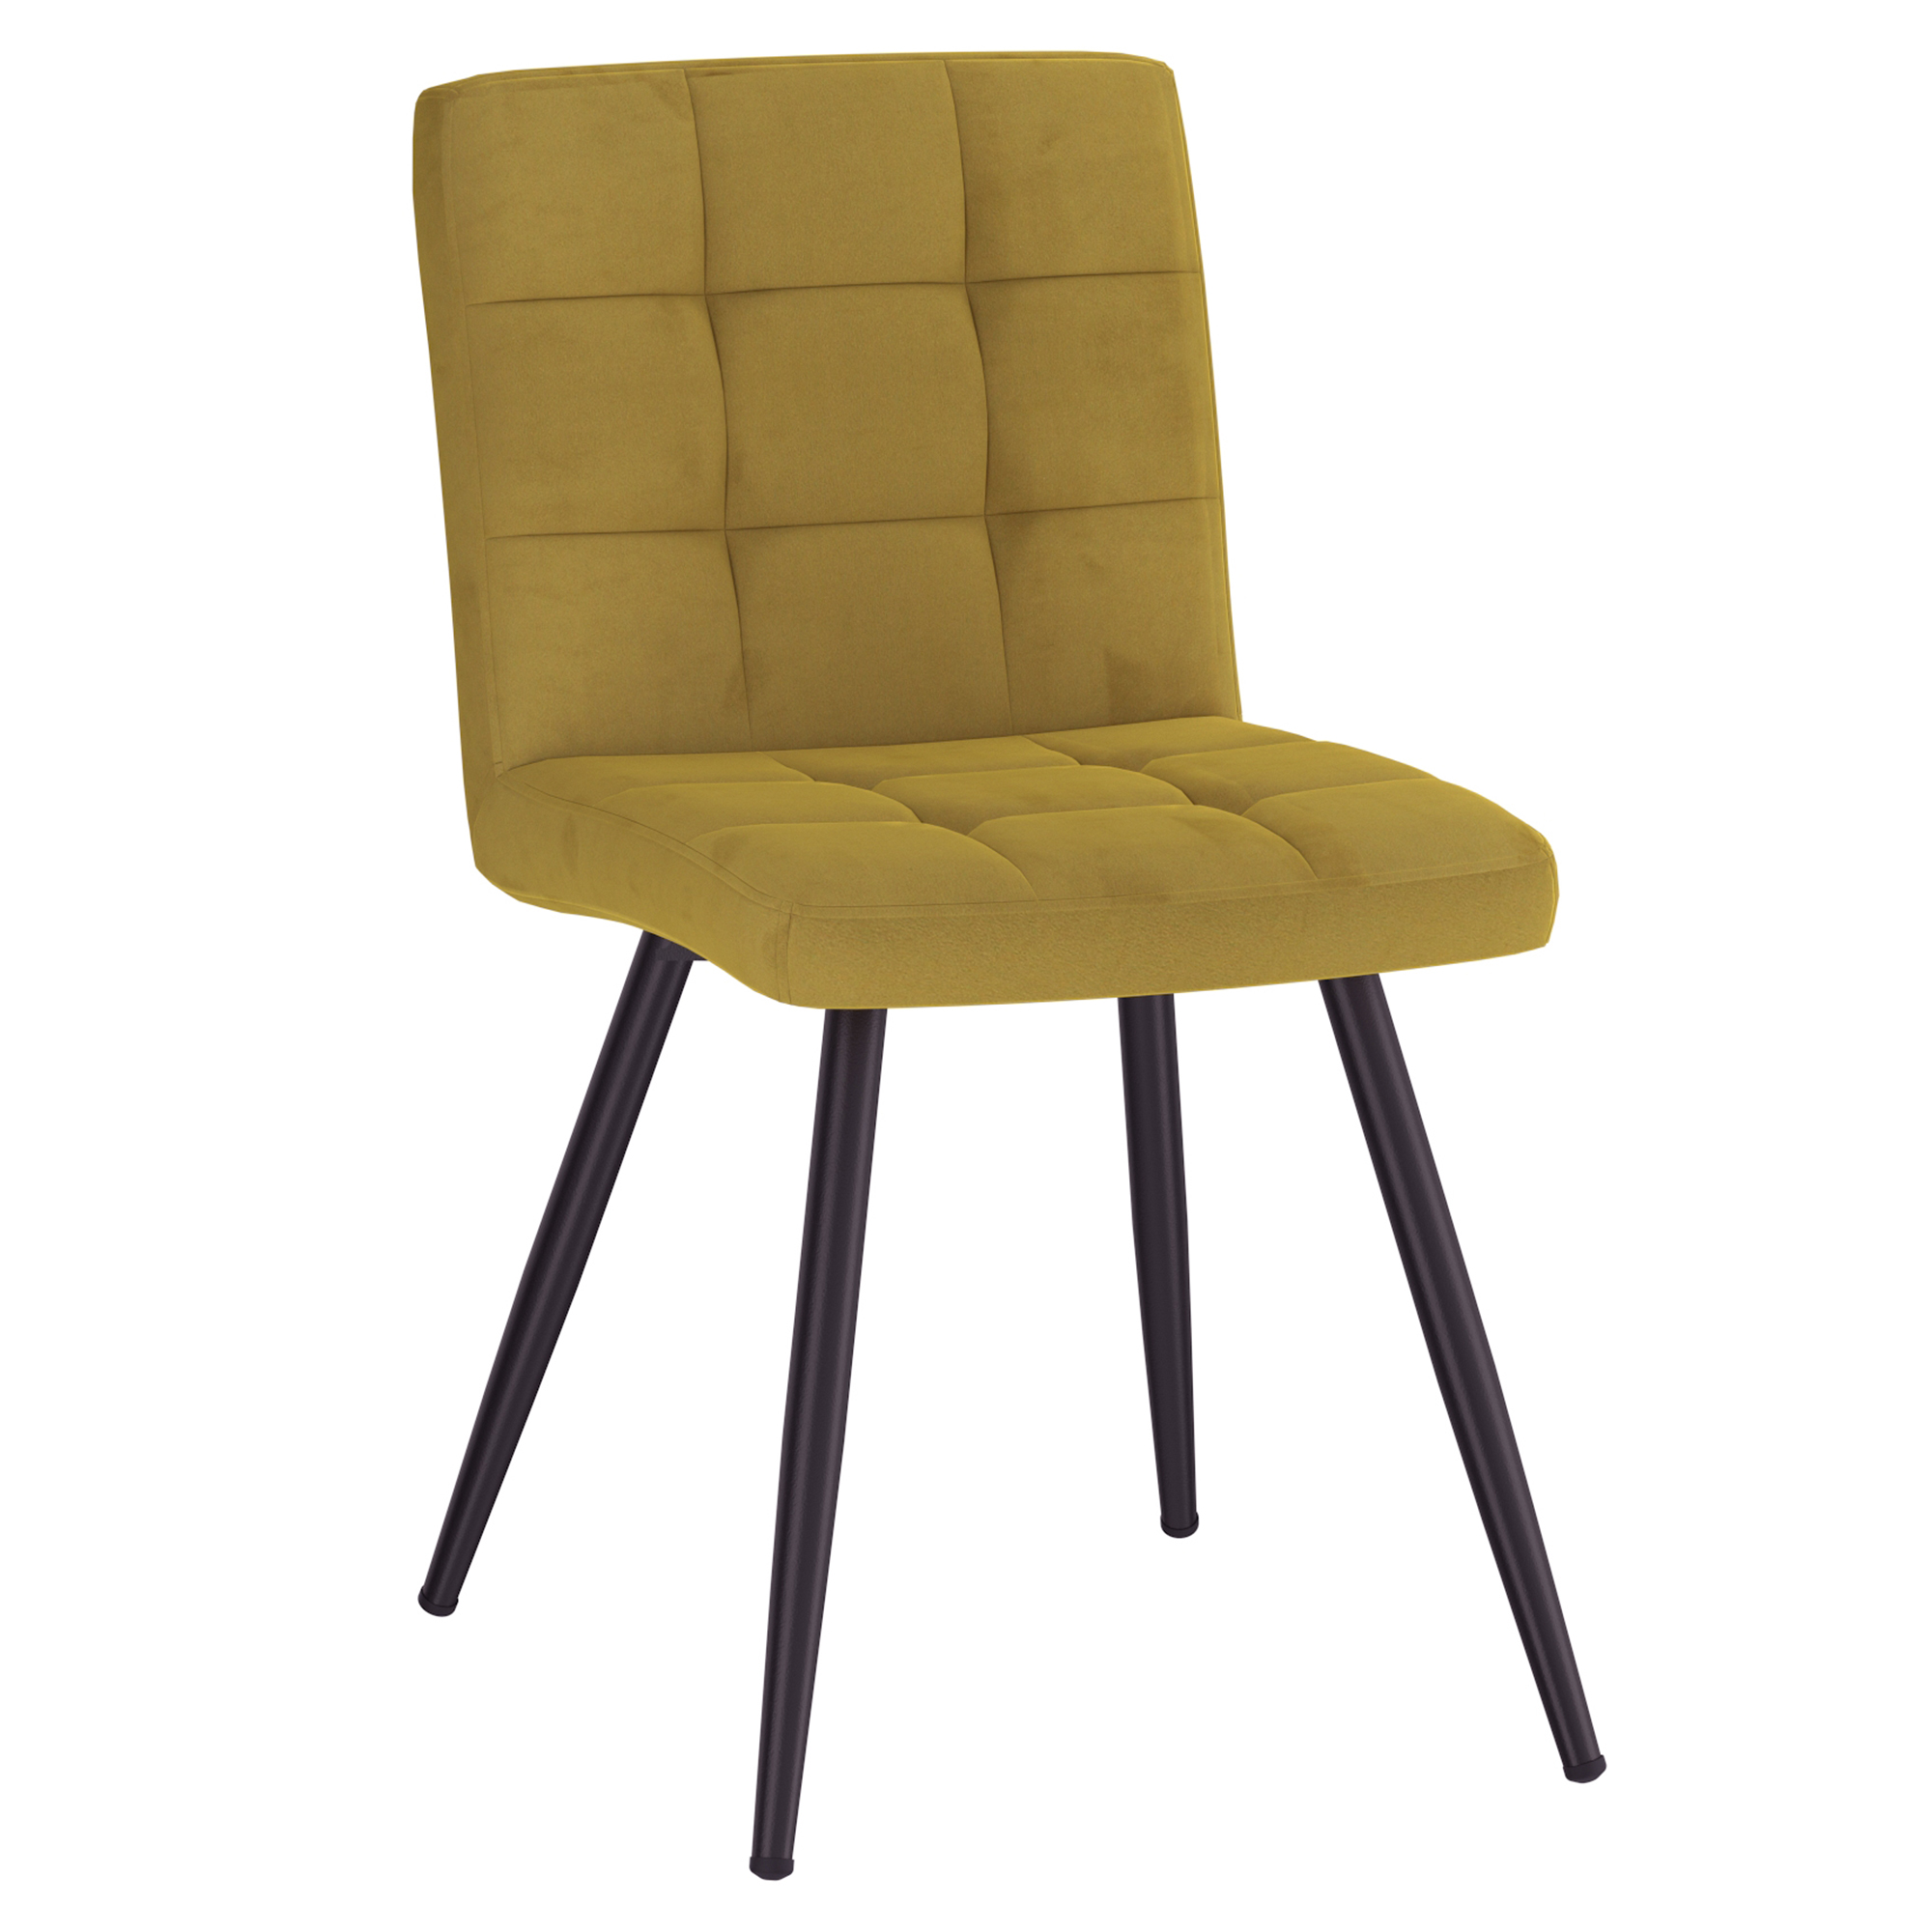 Set of 2 Contemporary Velvet & Metal Side Chair in Mustard